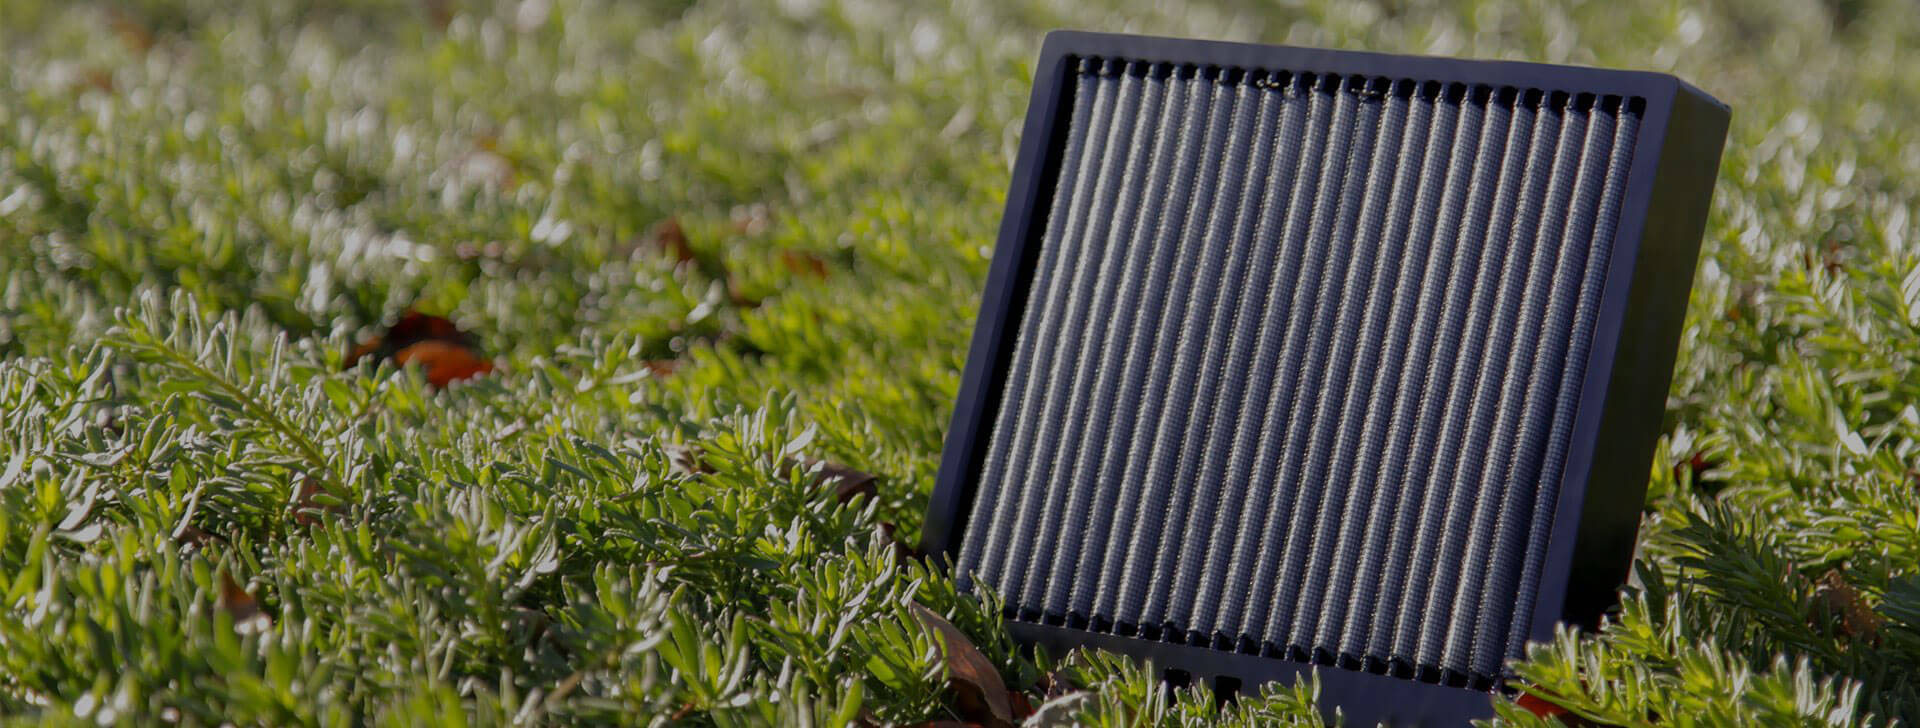 cabin air filter in grass